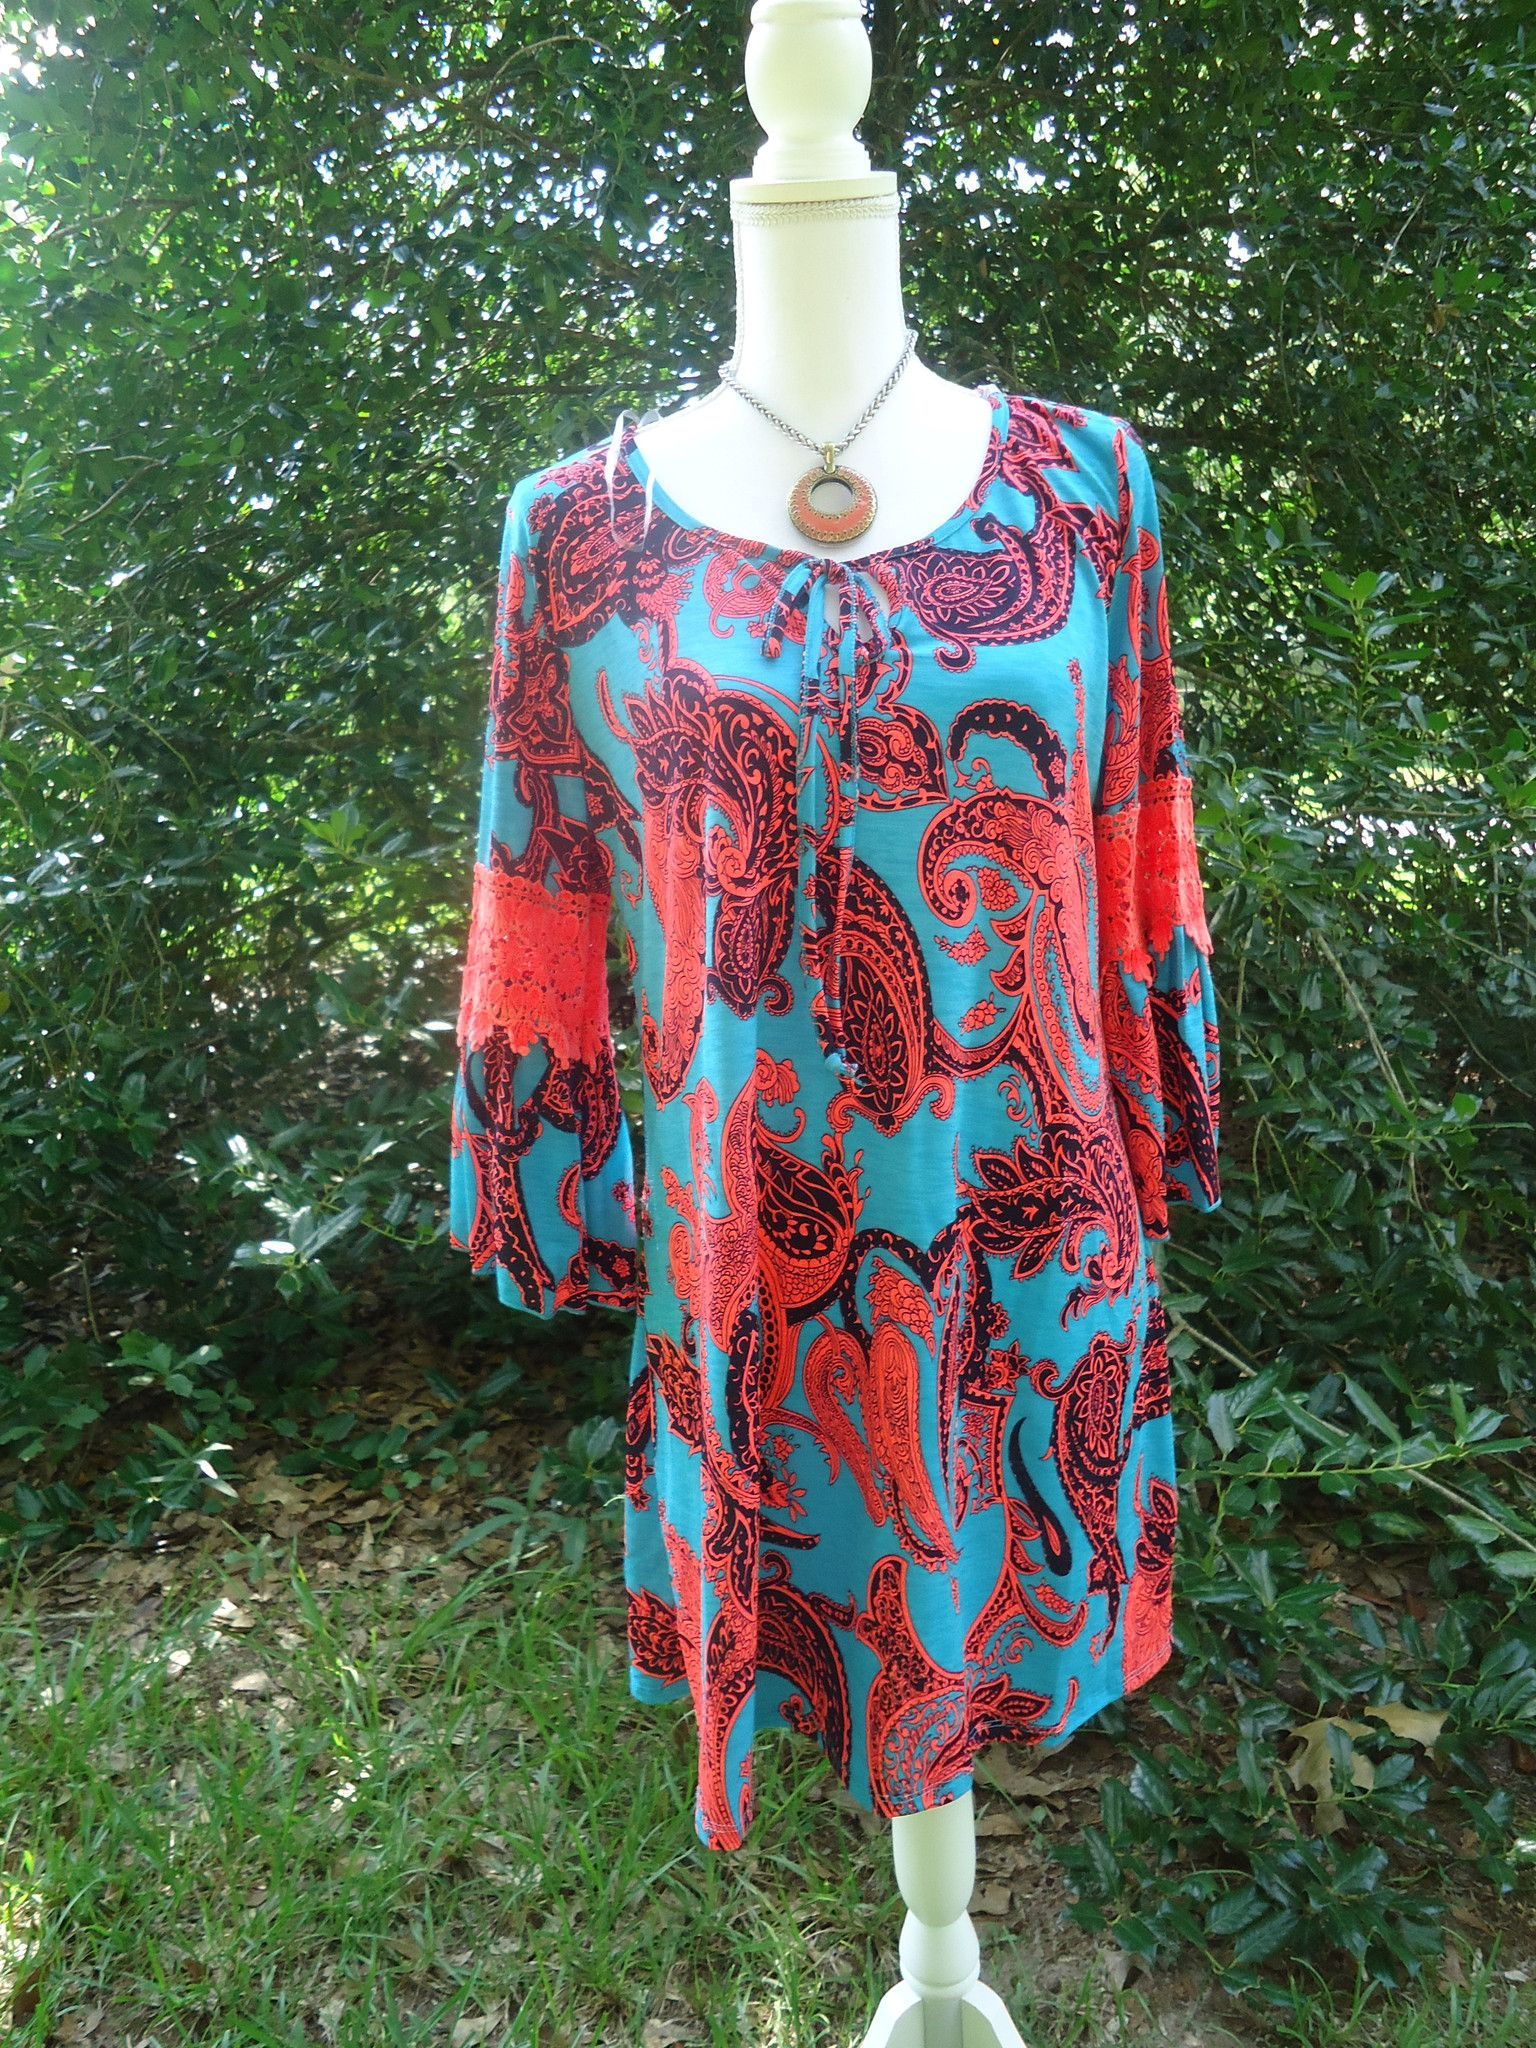 Honeyme 2B Together Valerie 993 Lace Coral Turquoise Tunic Dress S ...